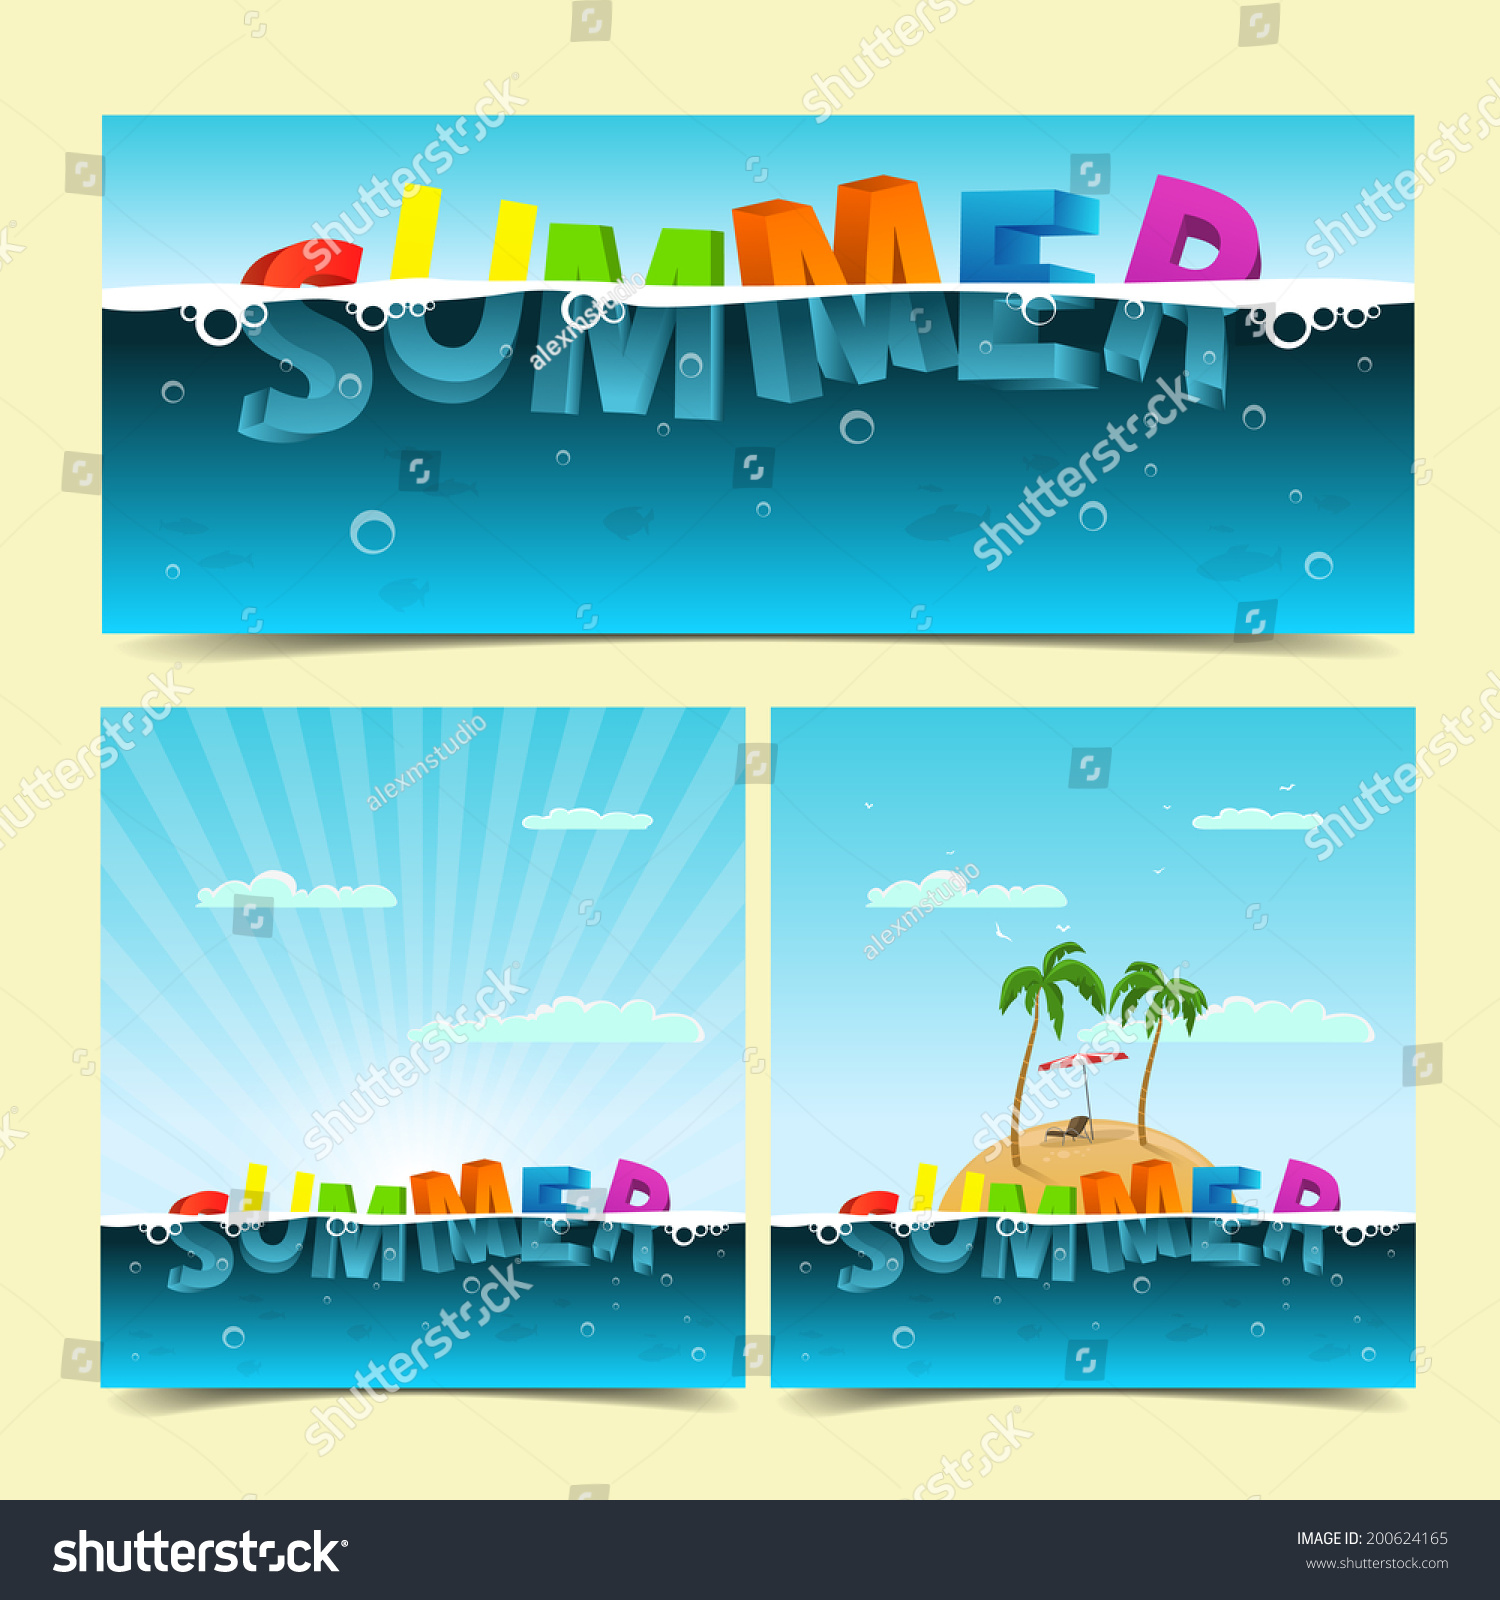 Beach chair and parasol vector illustration stock vector image - Summer Banners Stock Vector 200624165 Shutterstock